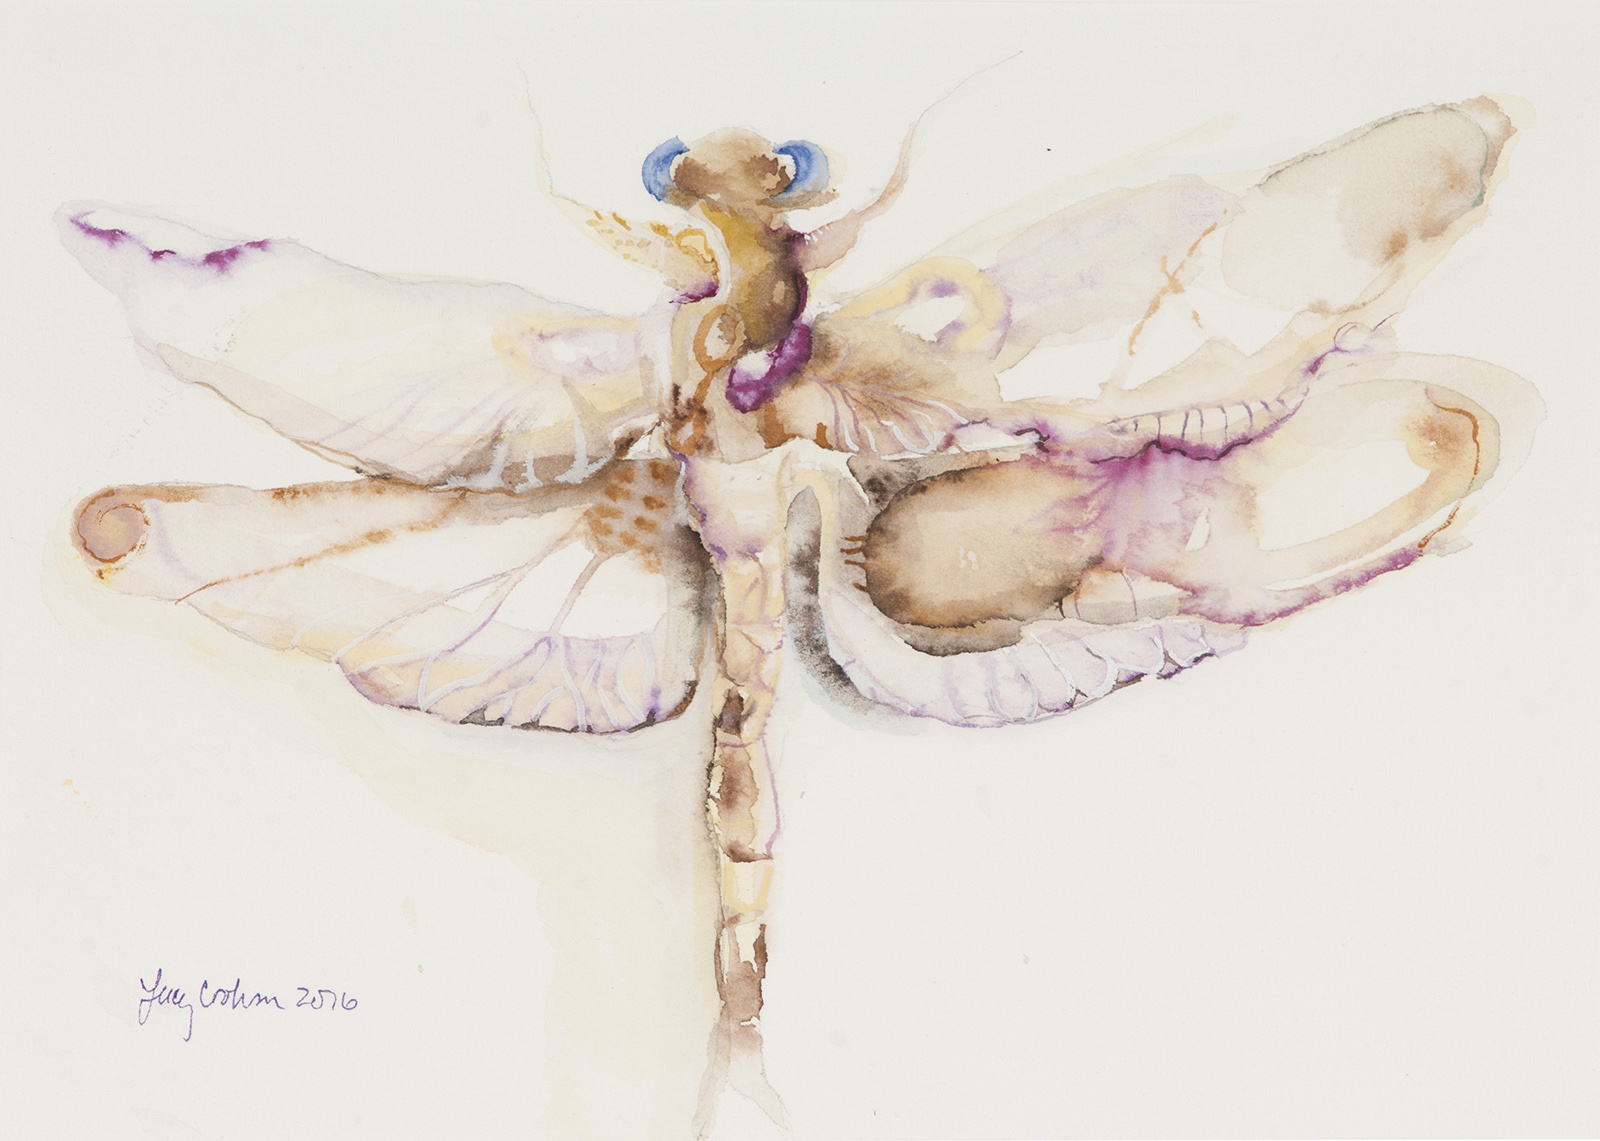 Dragonfly, 2016, Watercolor on paper, 9 x 12 in.